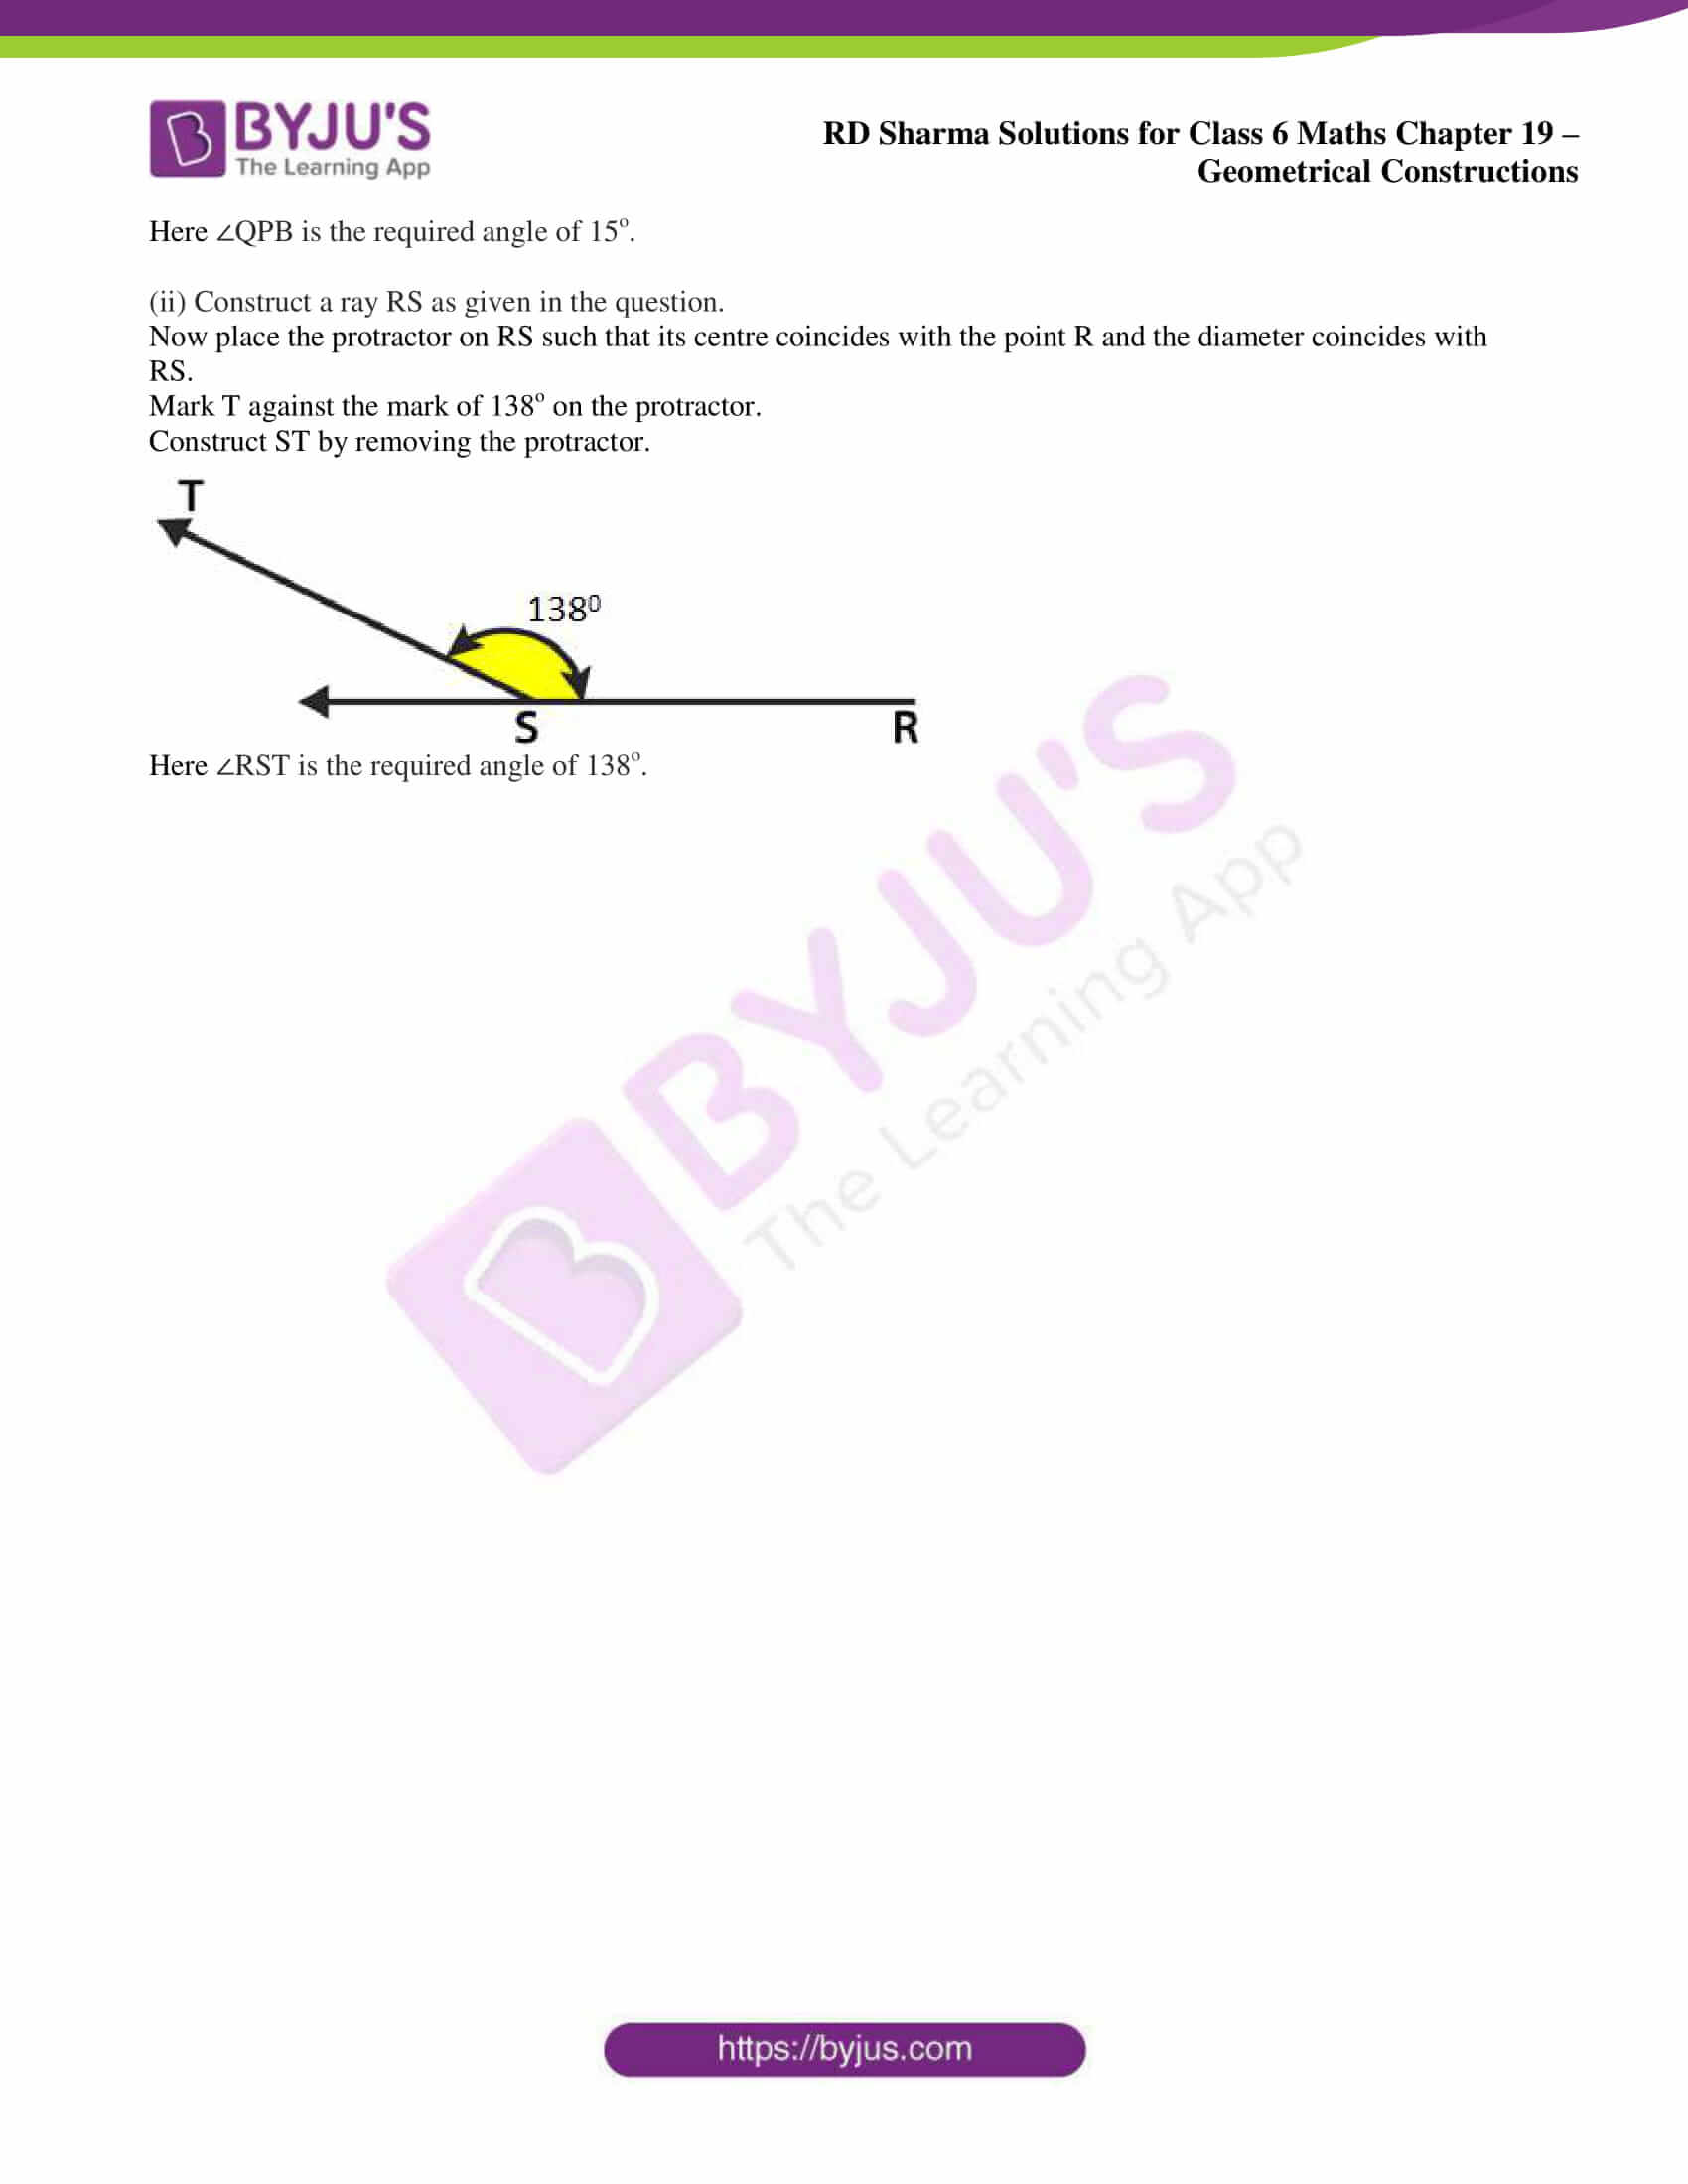 rd sharma solutions nov2020 class 6 maths chapter 19 exercise 4 3